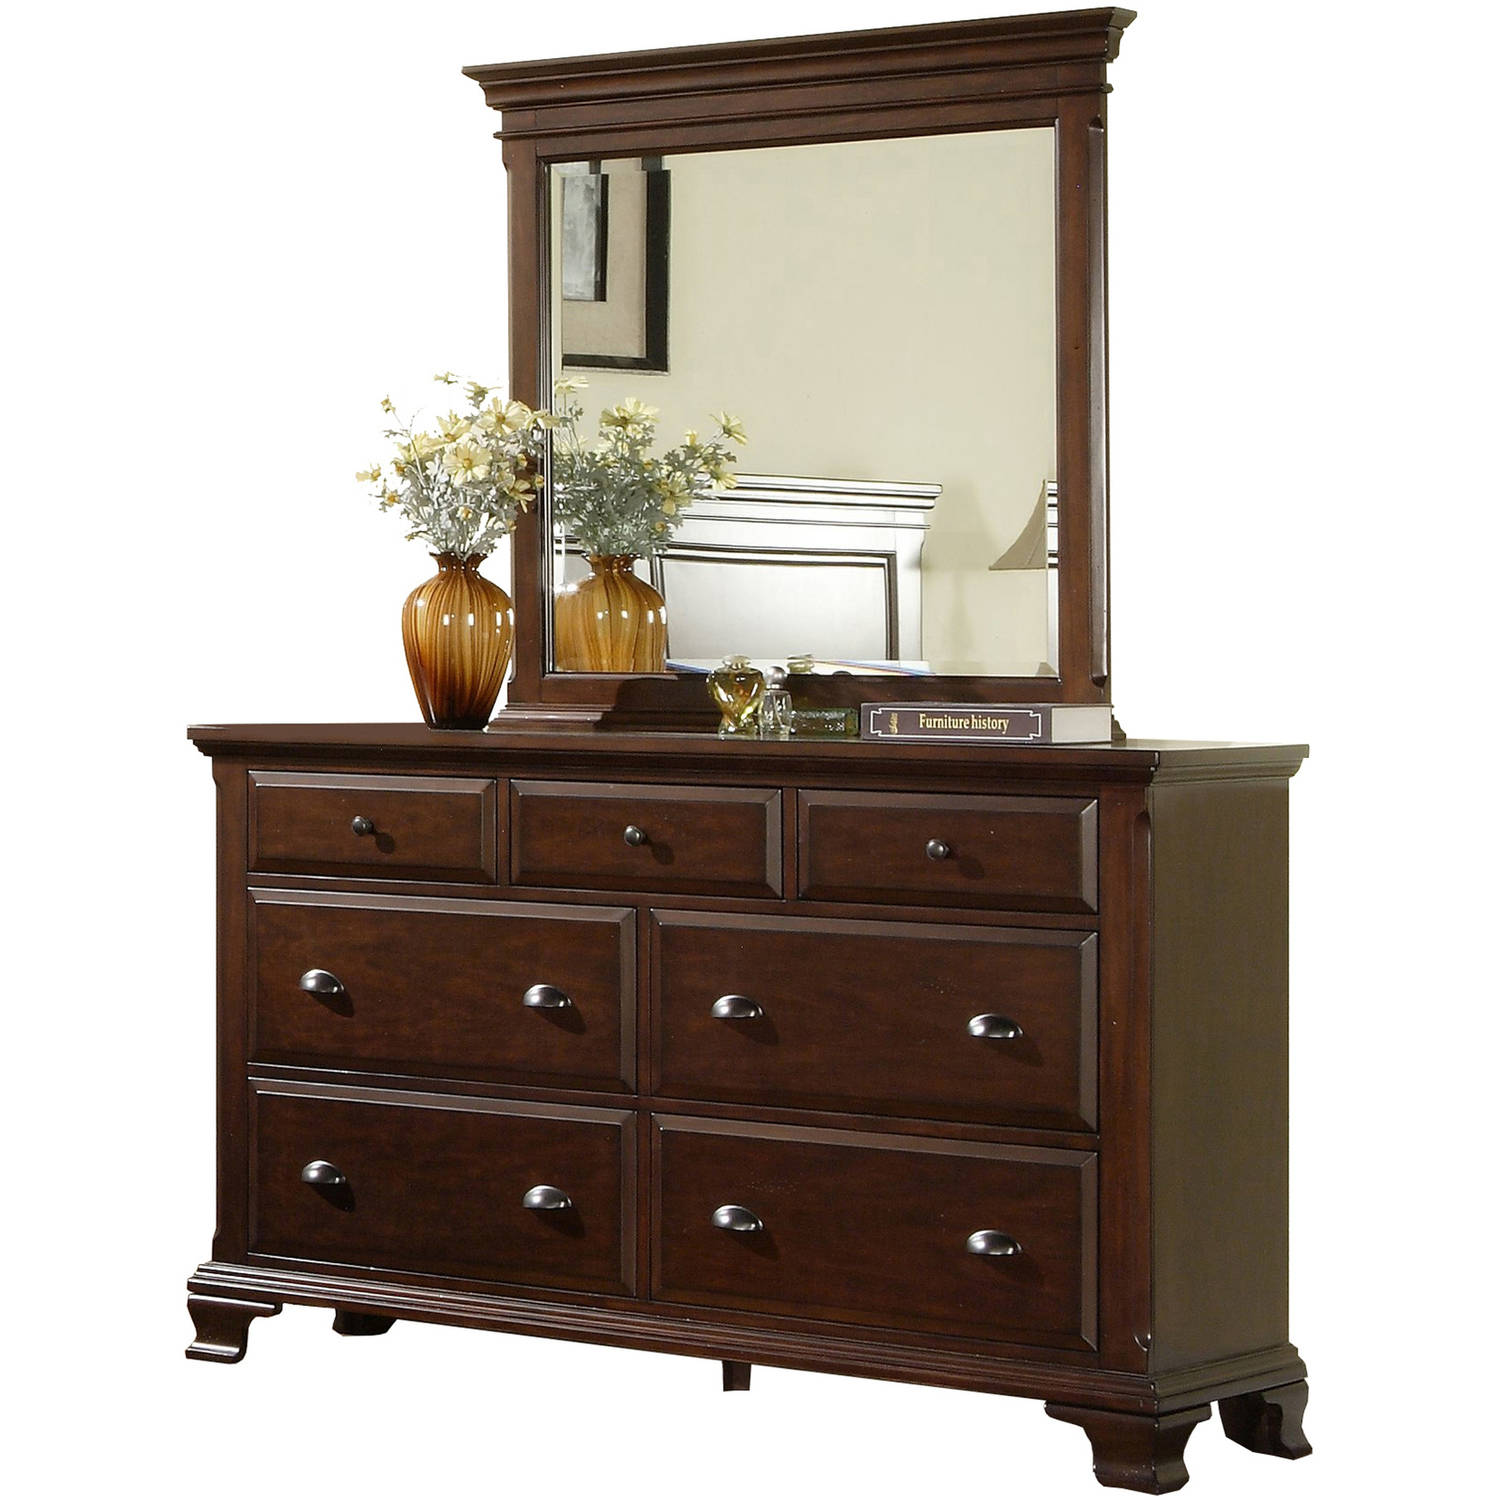 Picket House Furnishings Brinley Cherry Dresser and Mirror Set